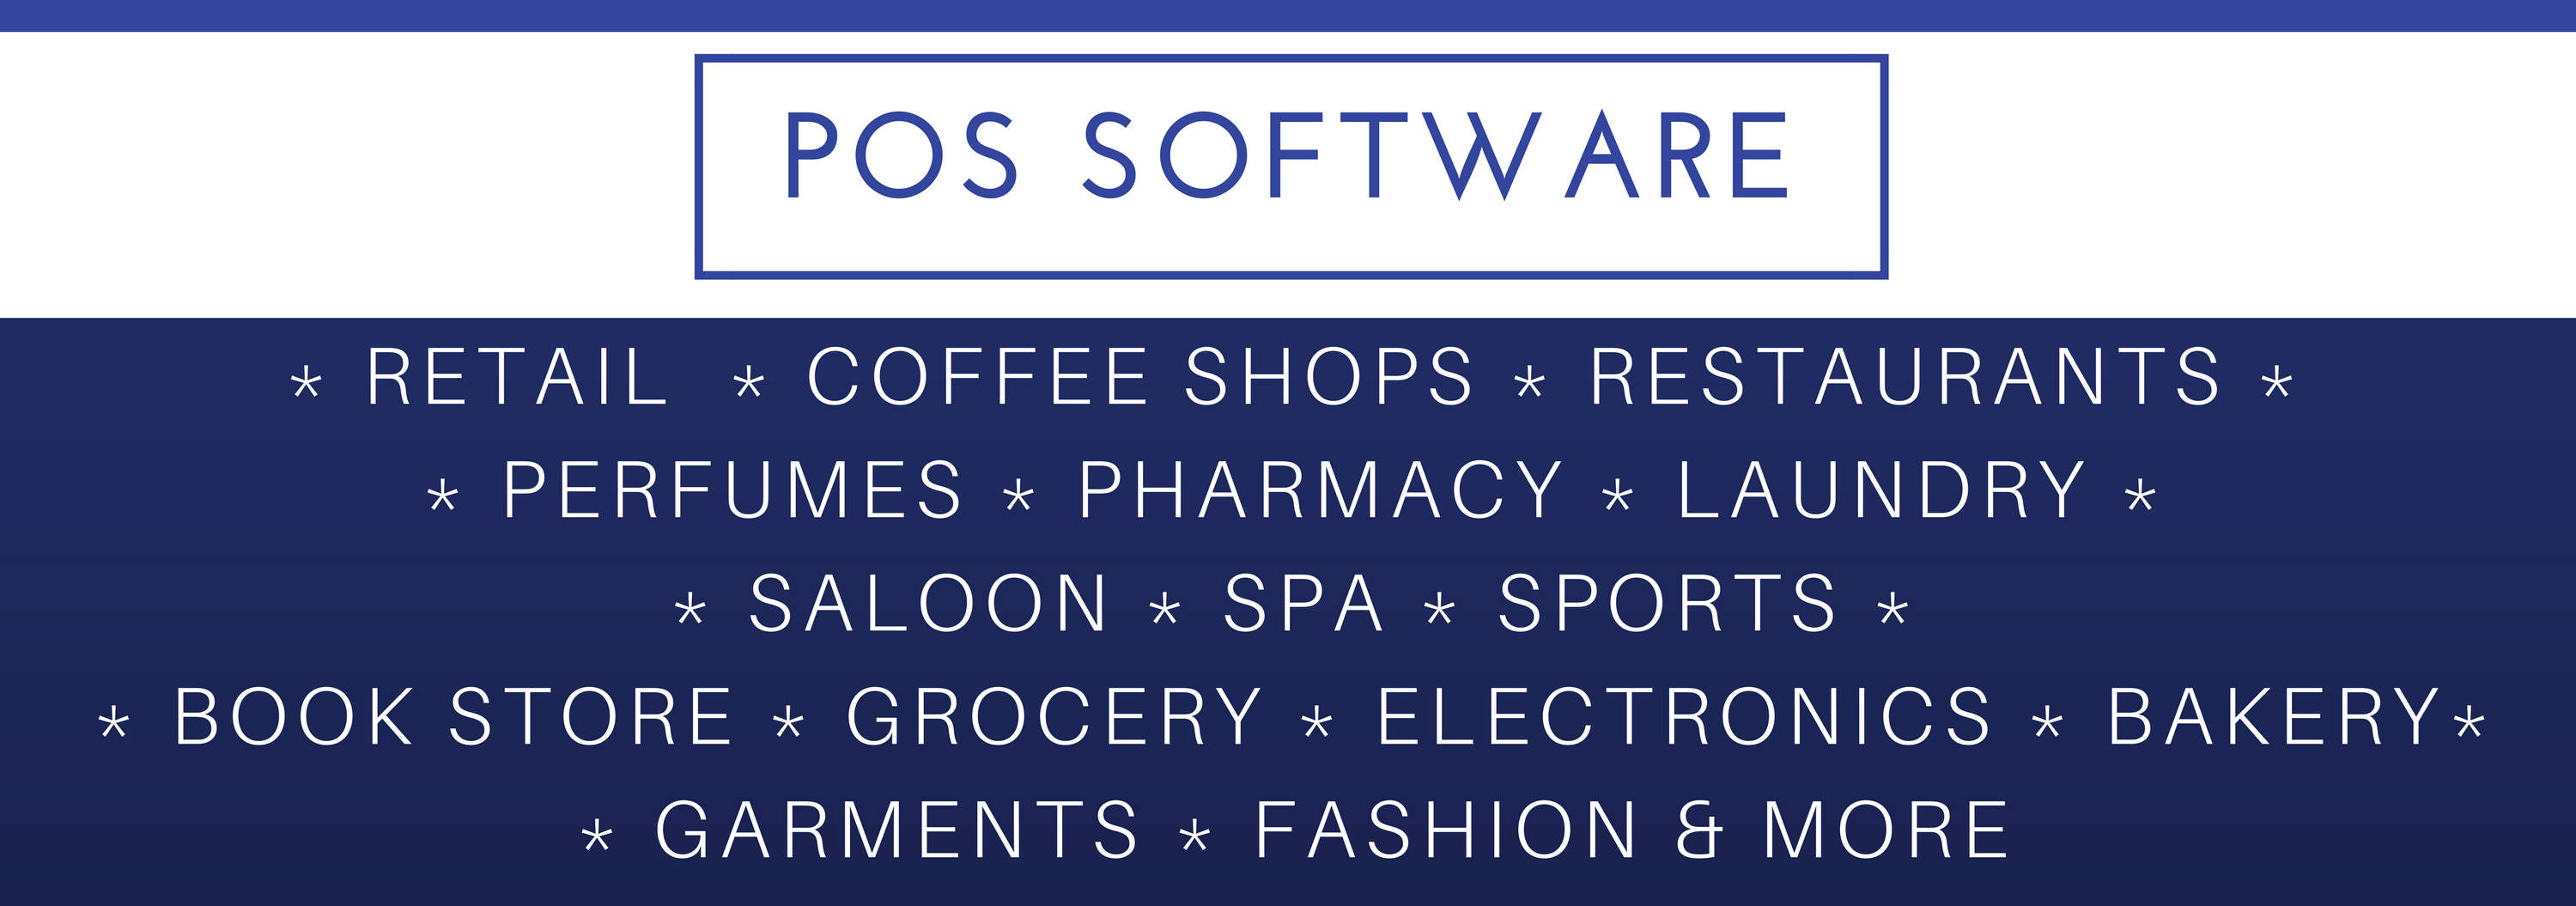 POS Software and Hardware in Kuwait at Q8SUPPLY COM